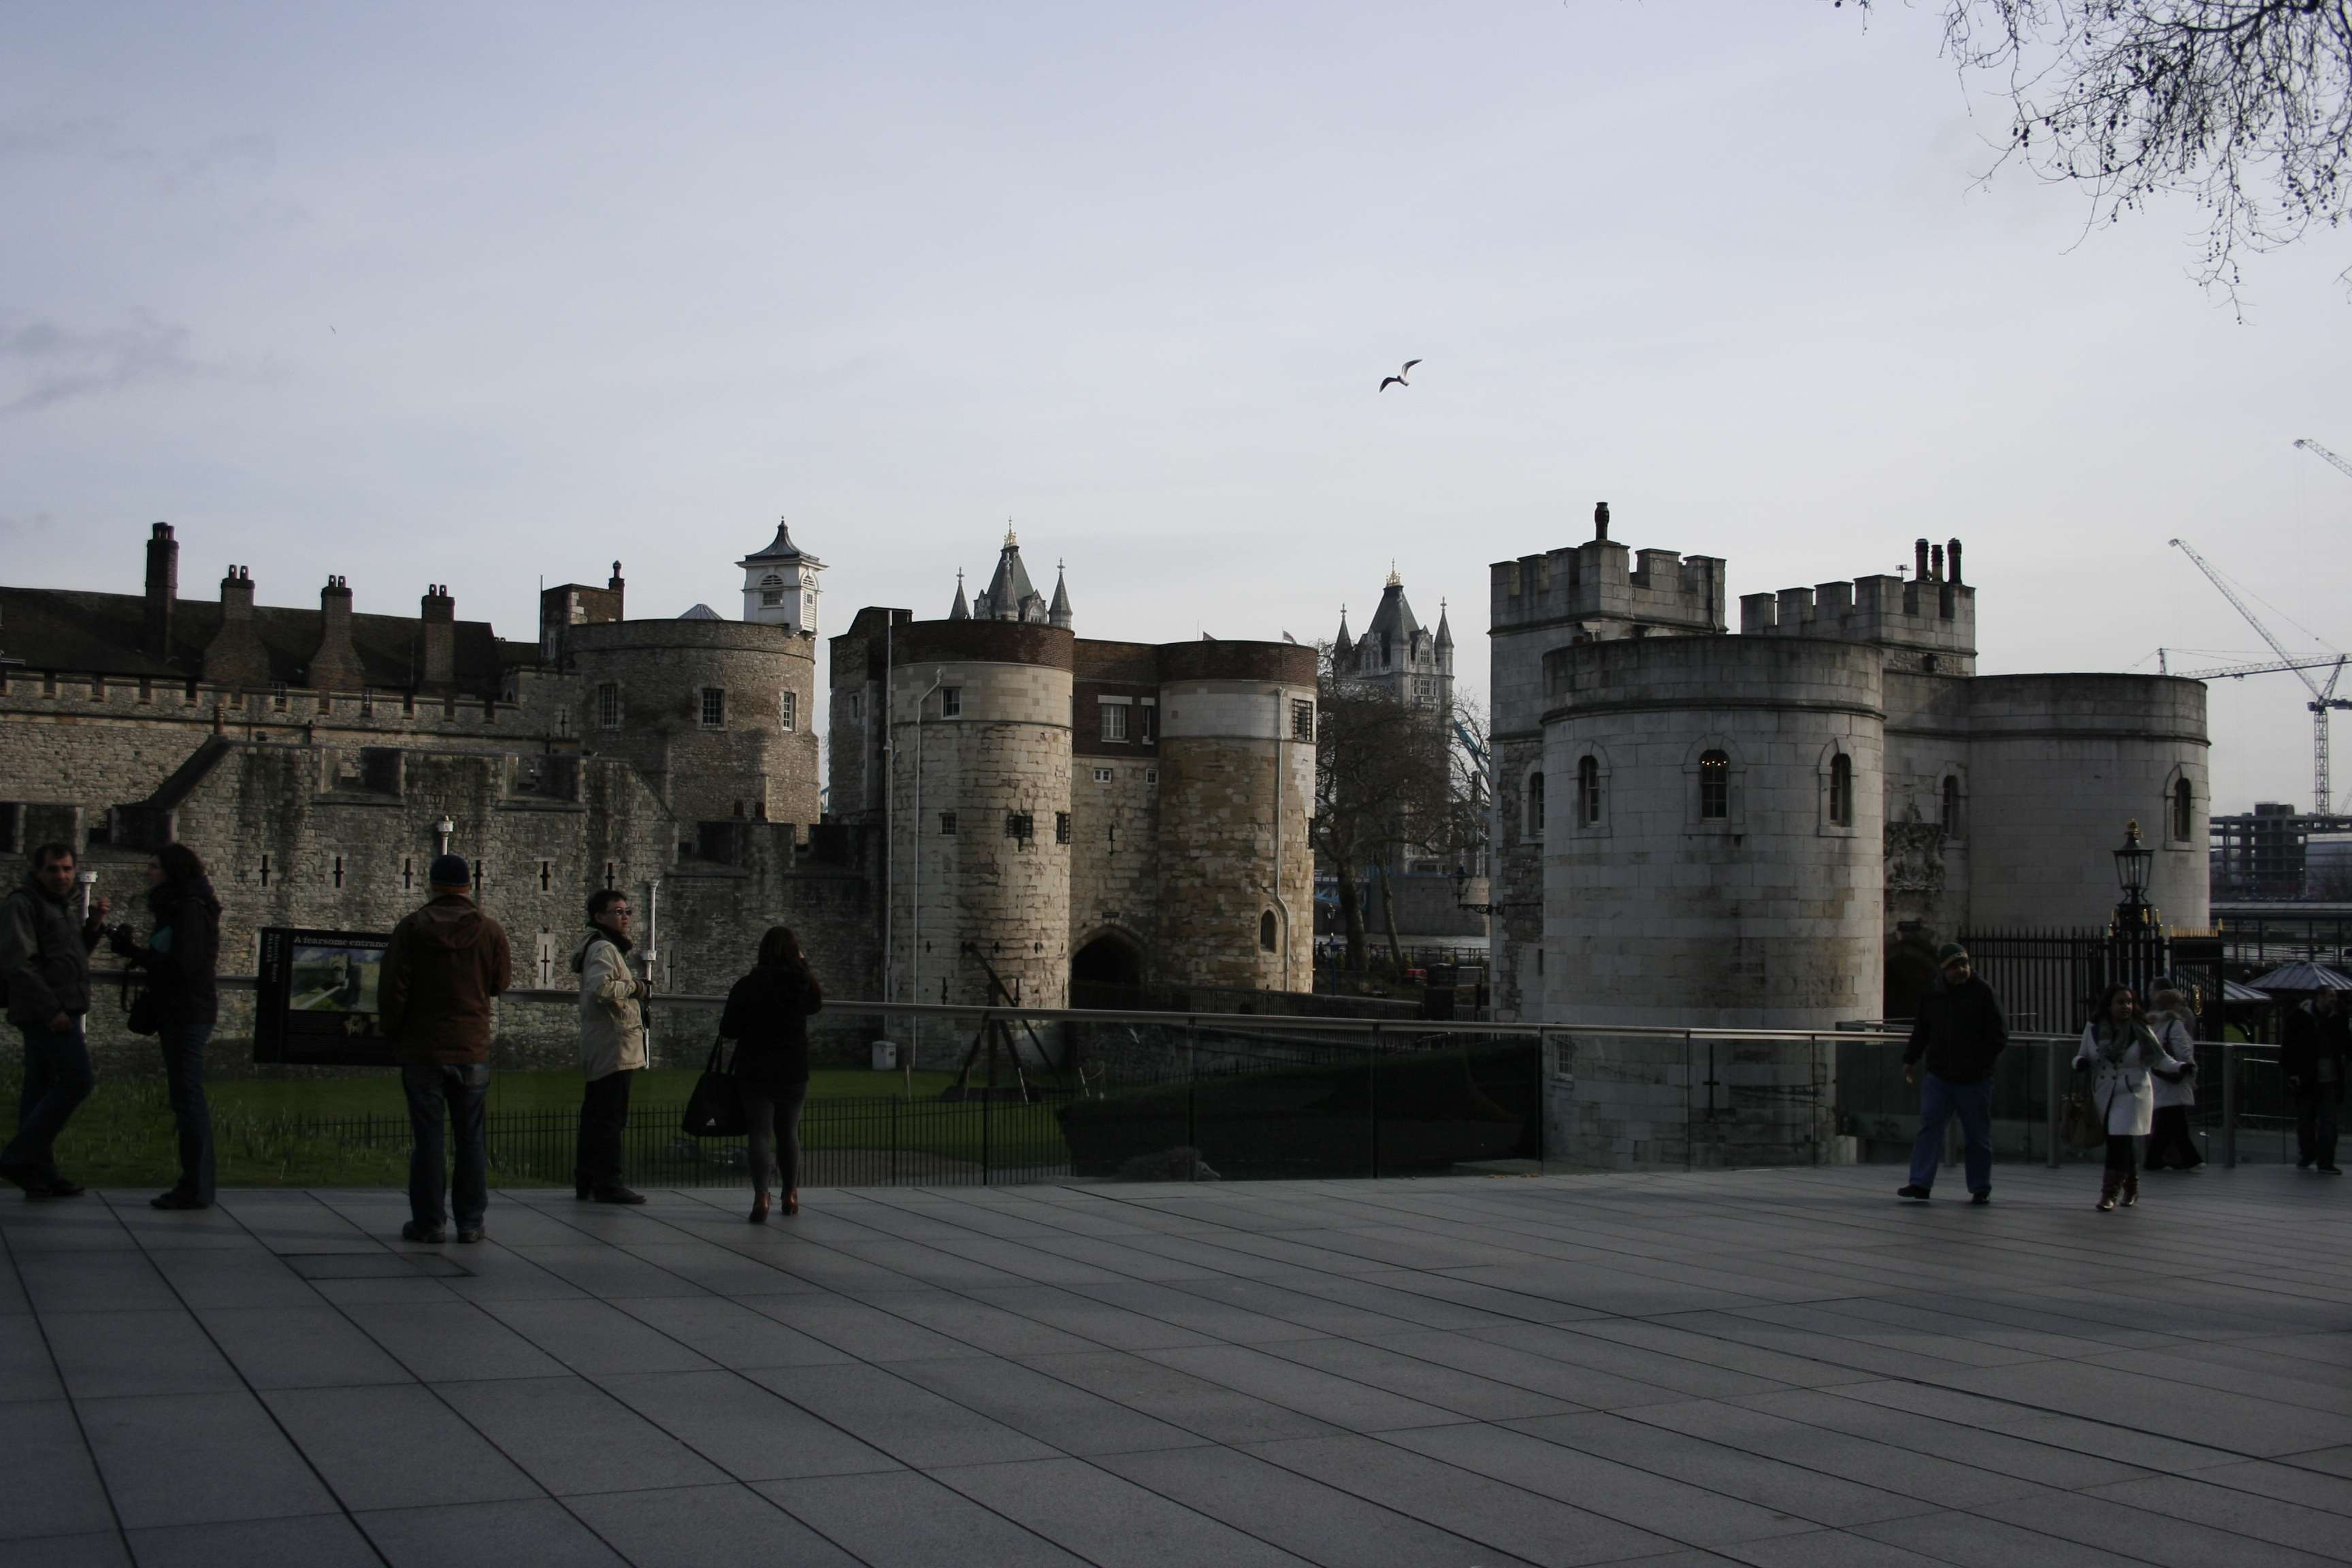 London_0085 Tower of London